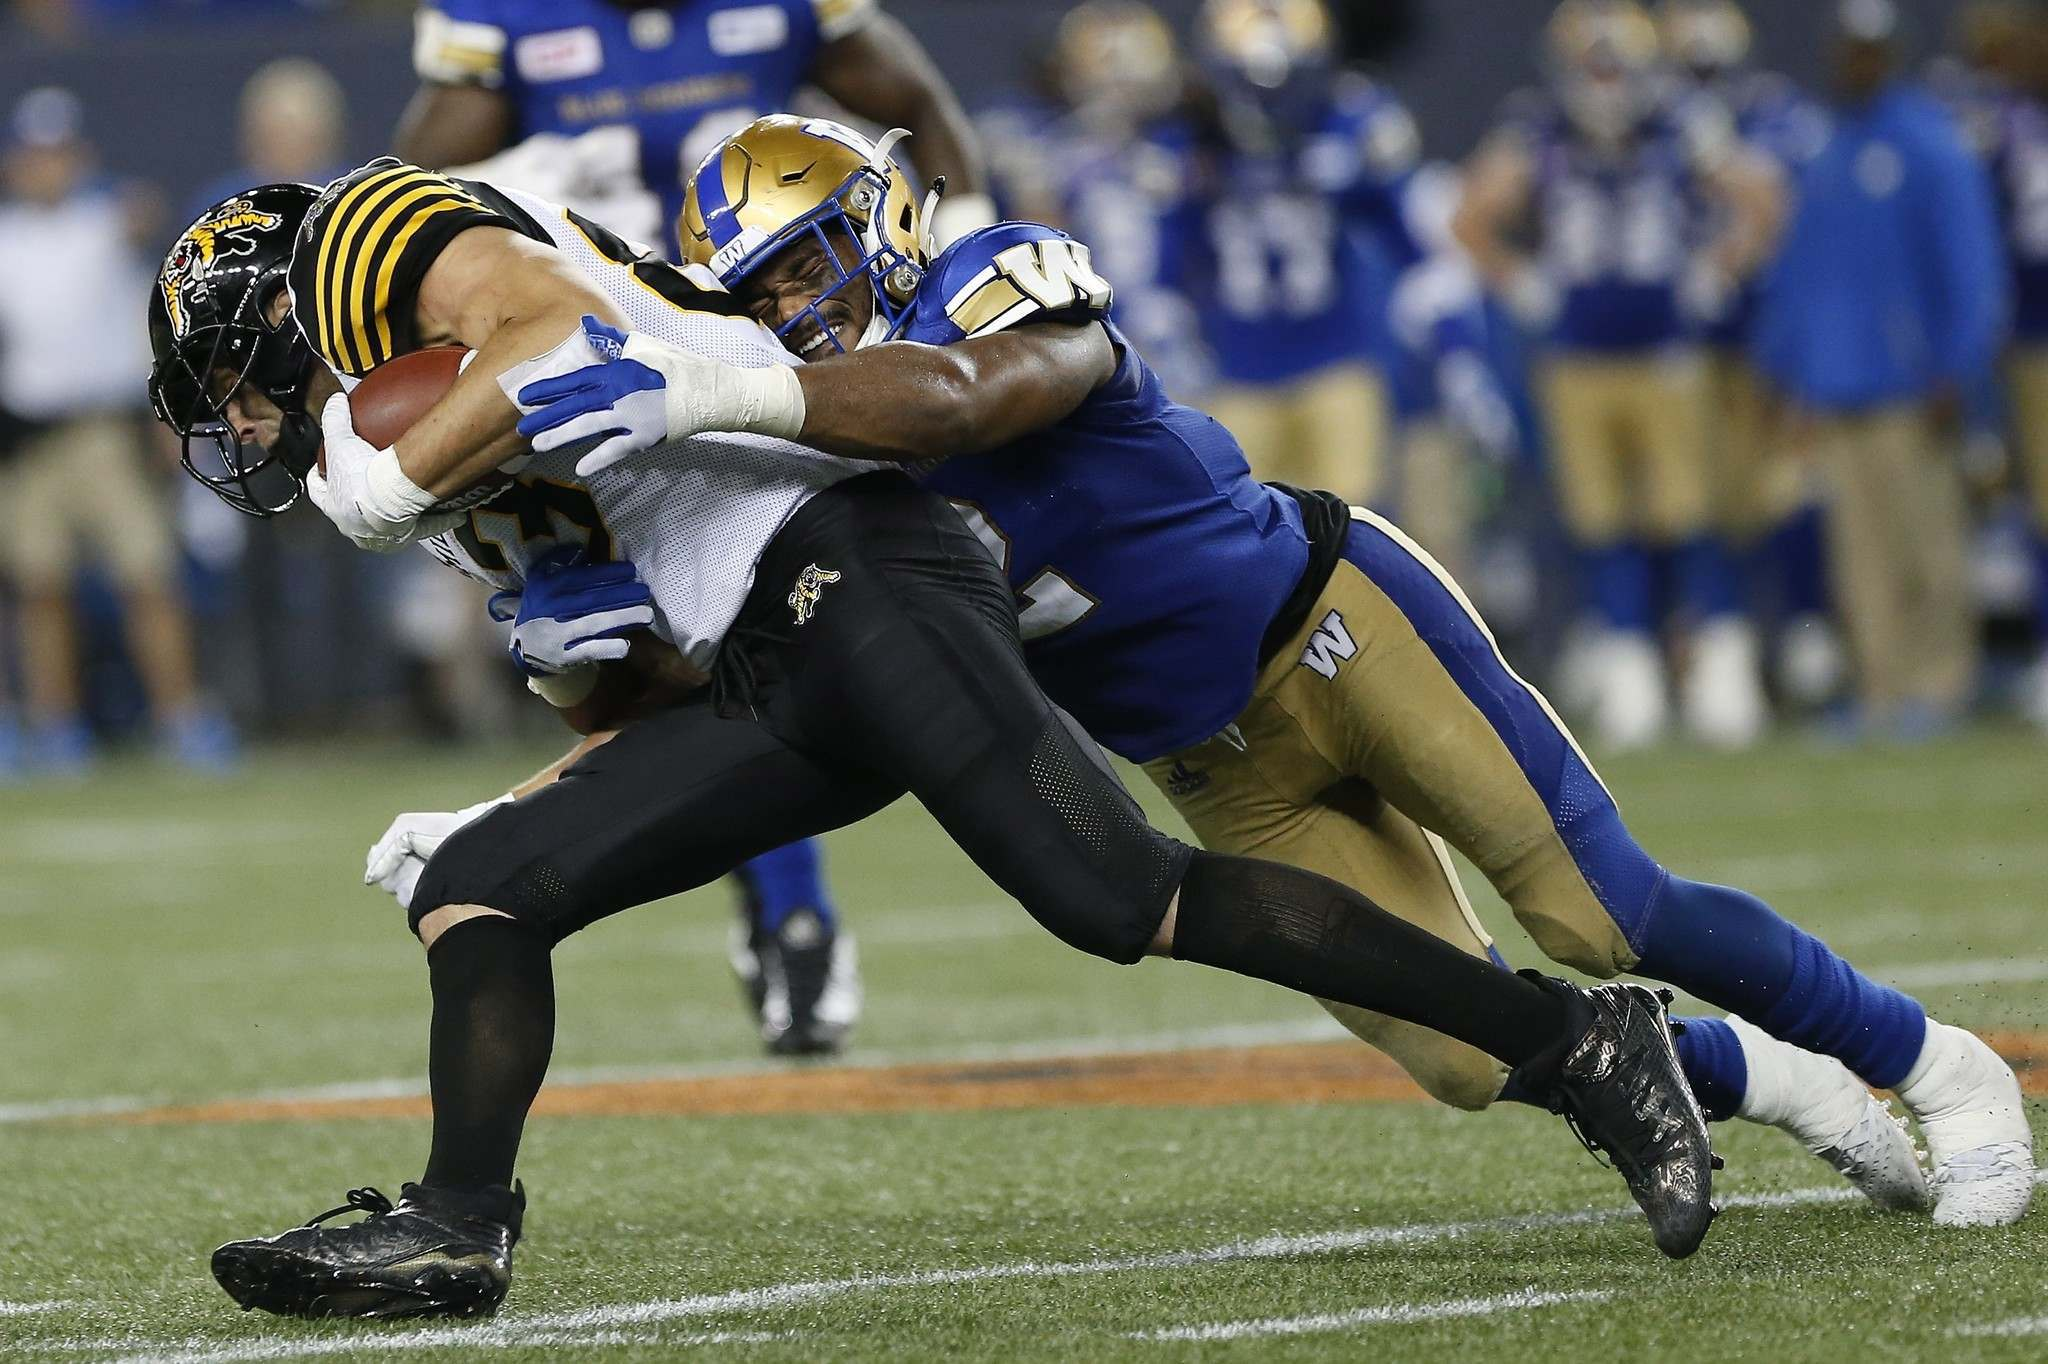 The CFL – a beginners guide for UK american football fans